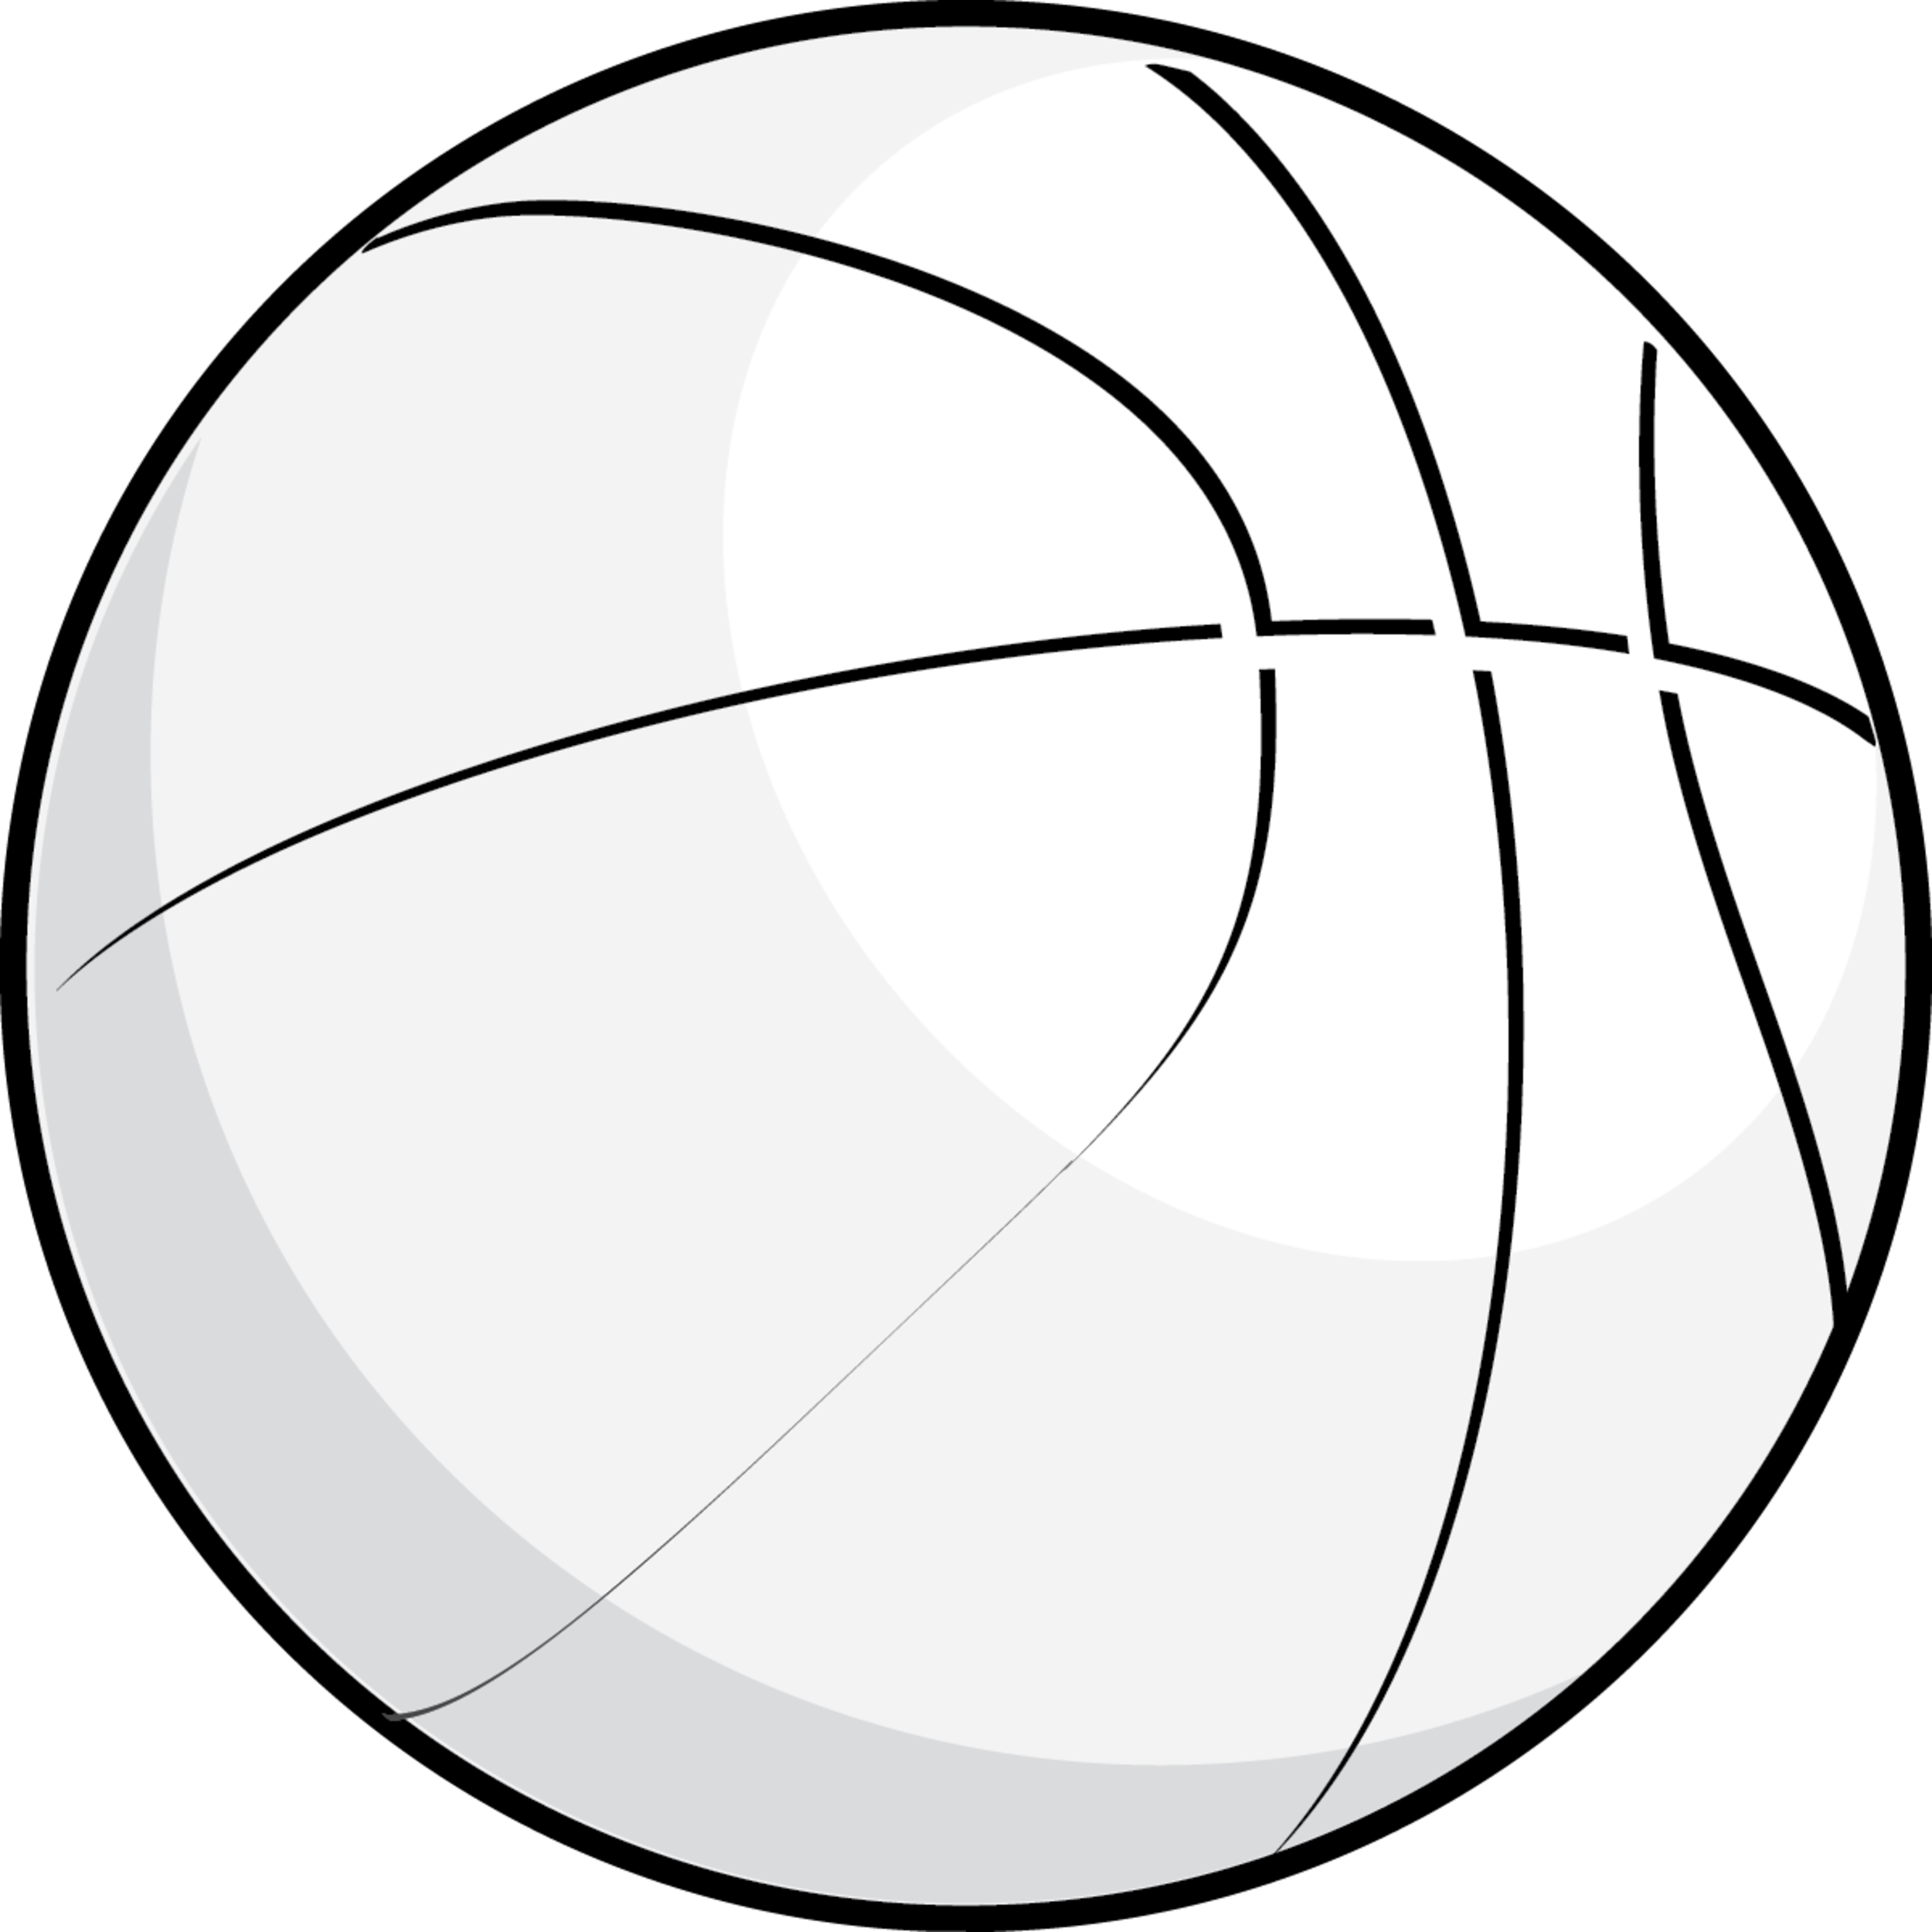 Free White Basketball Cliparts Download Free Clip Art